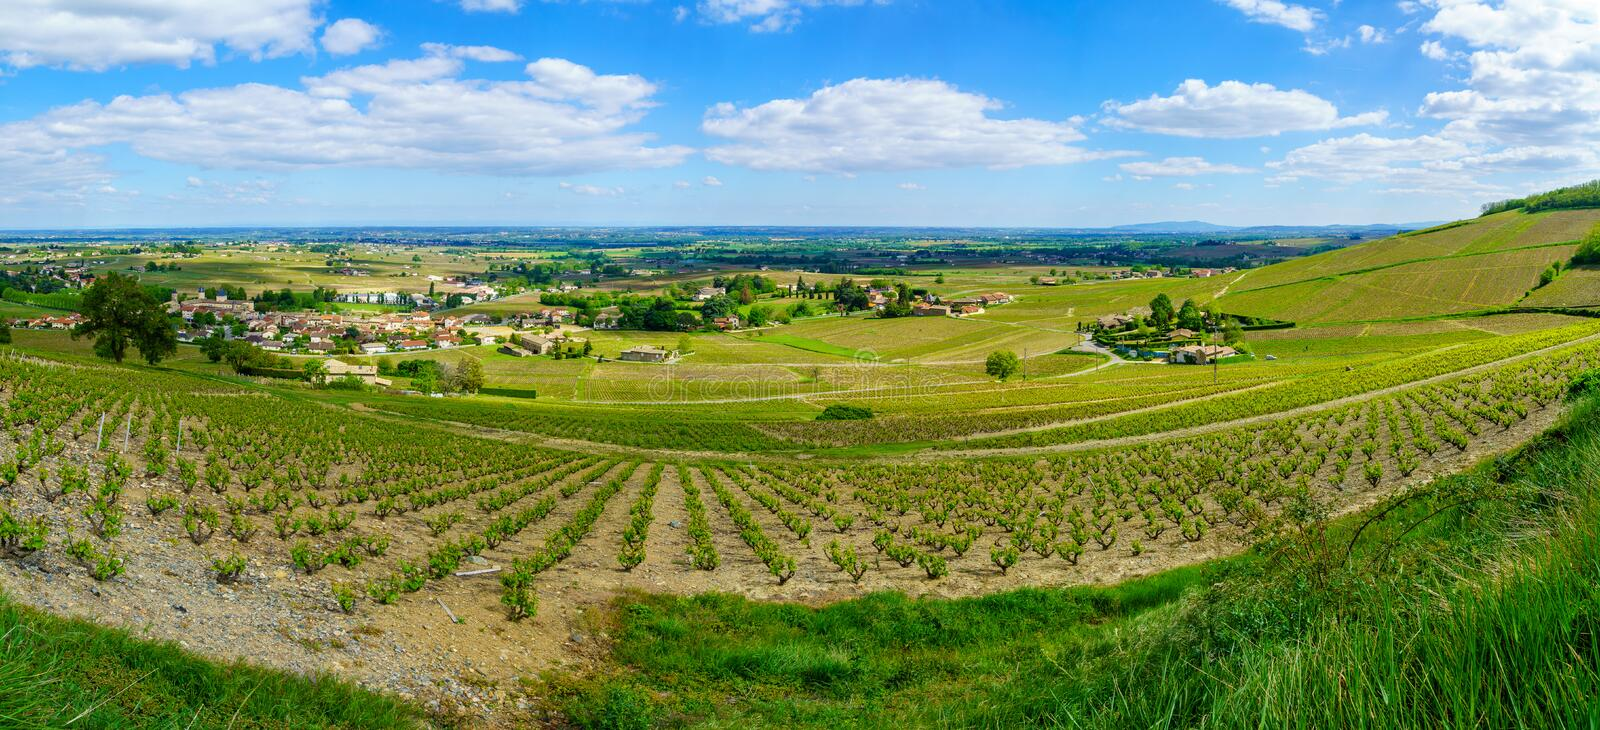 Panoramic landscape of vineyards and countryside in Beaujolais. Rhone department, France stock photography